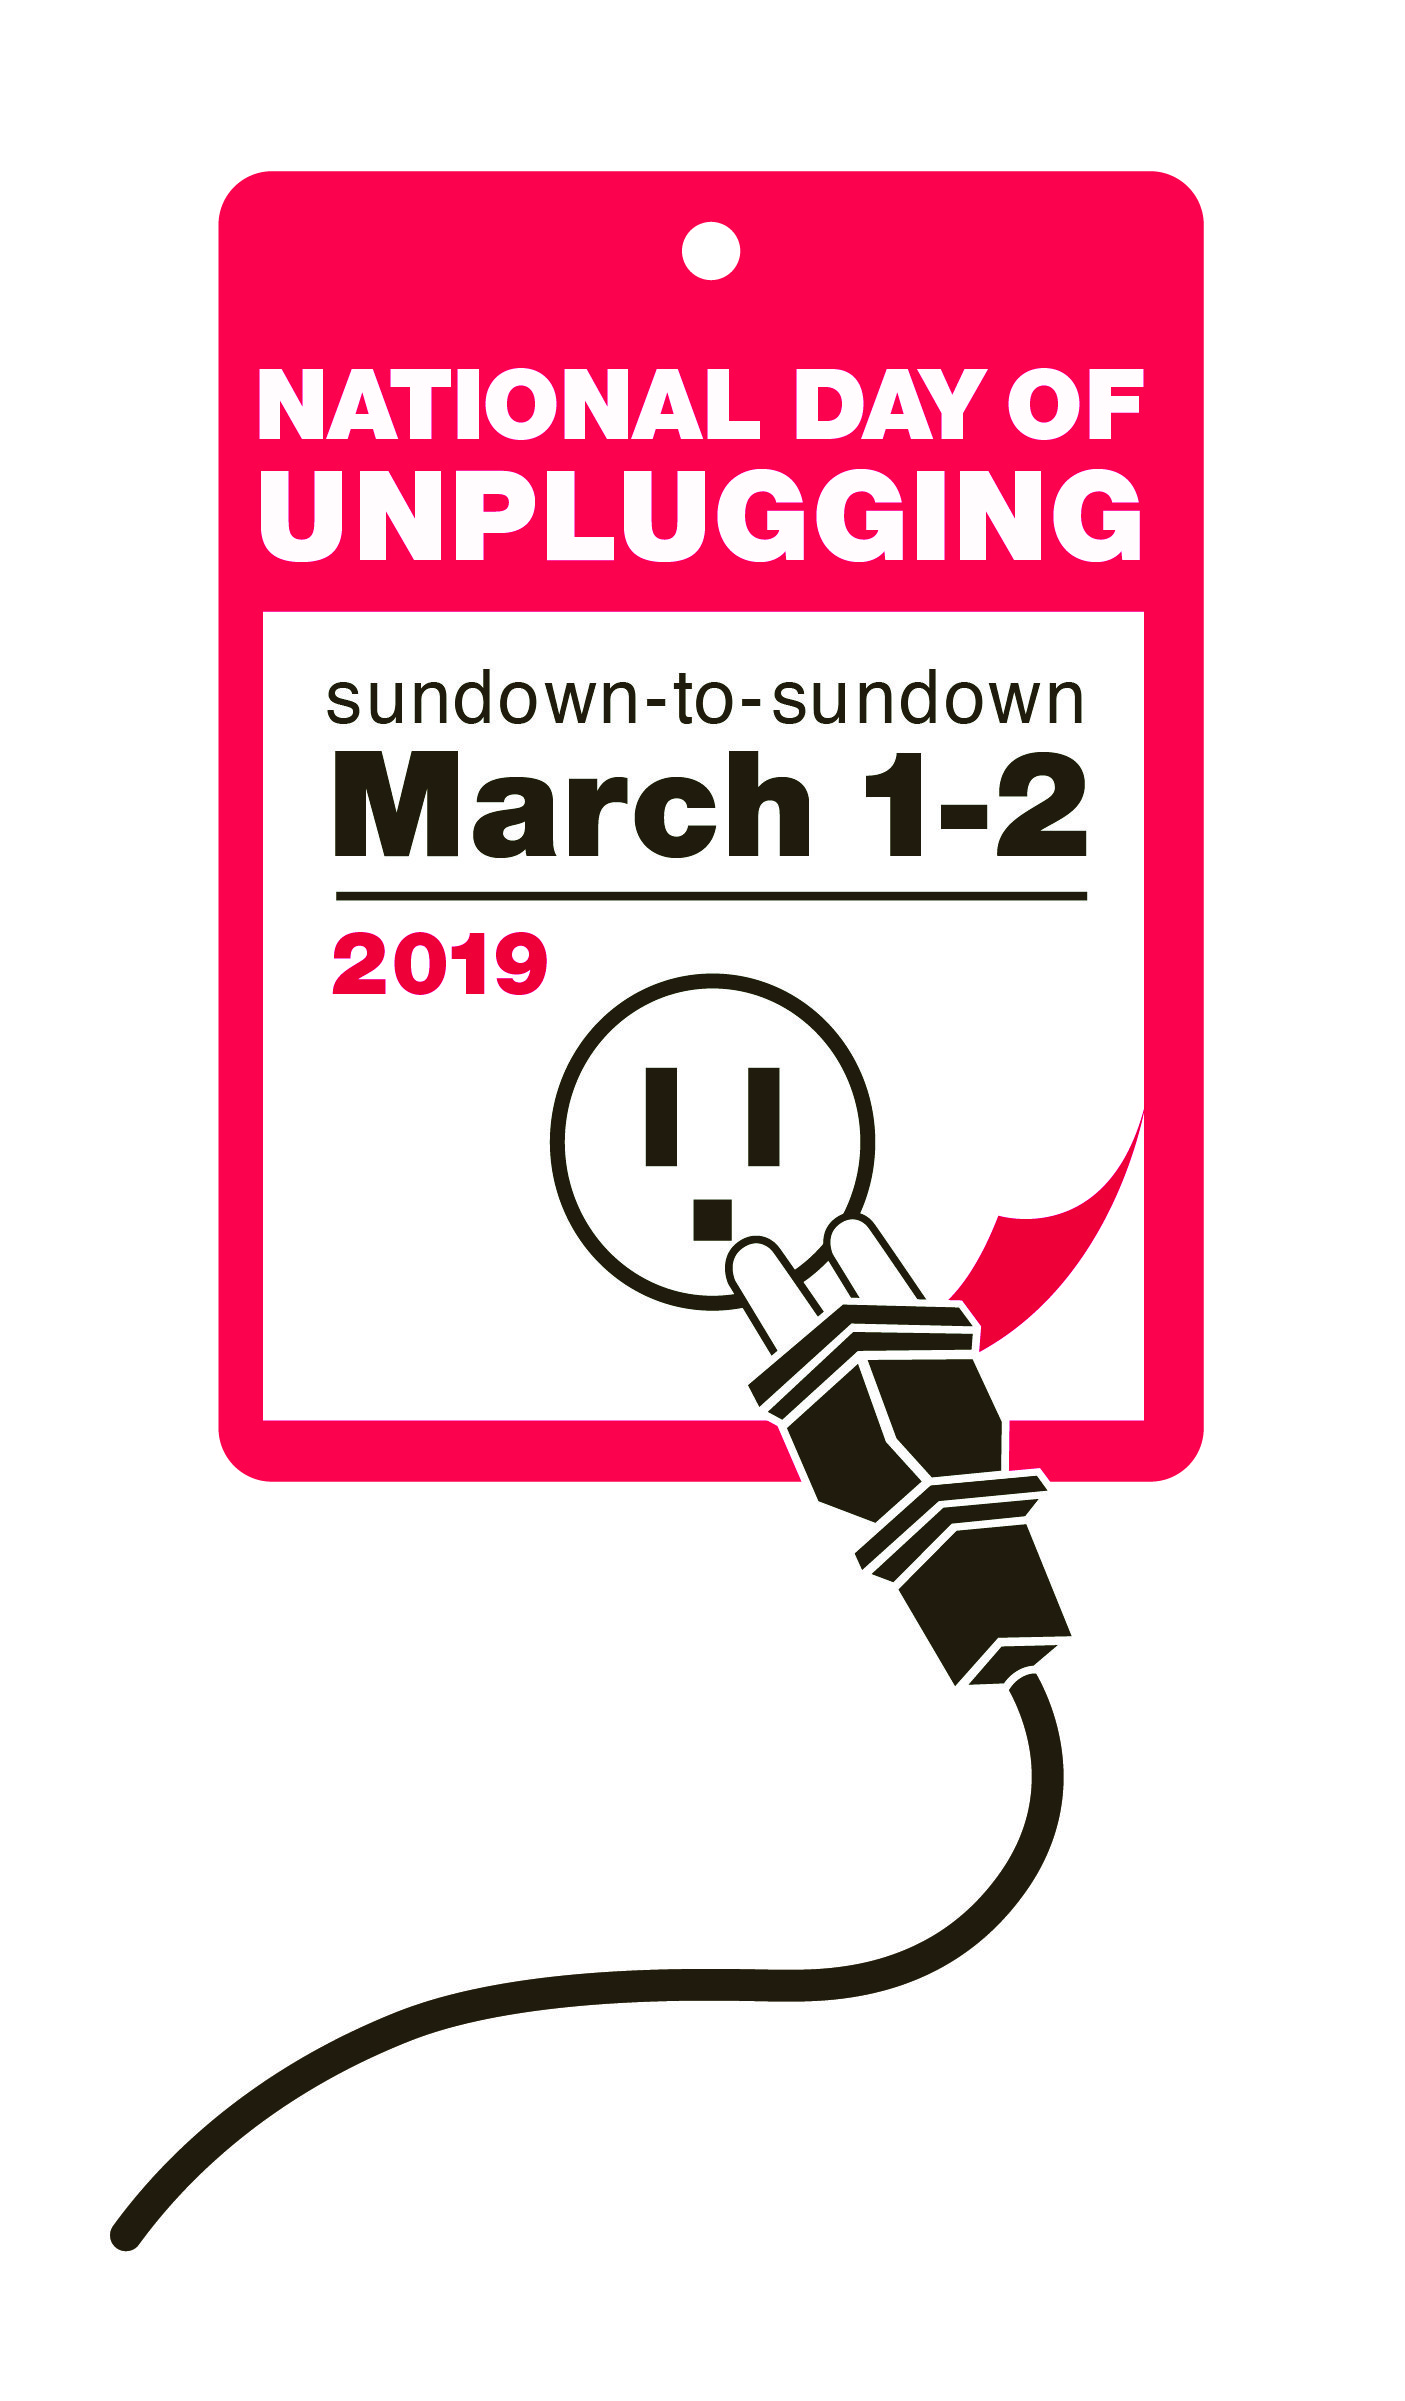 Celebrate the National Day of Unplugging with Vista Energy | VIsta Energy Blog